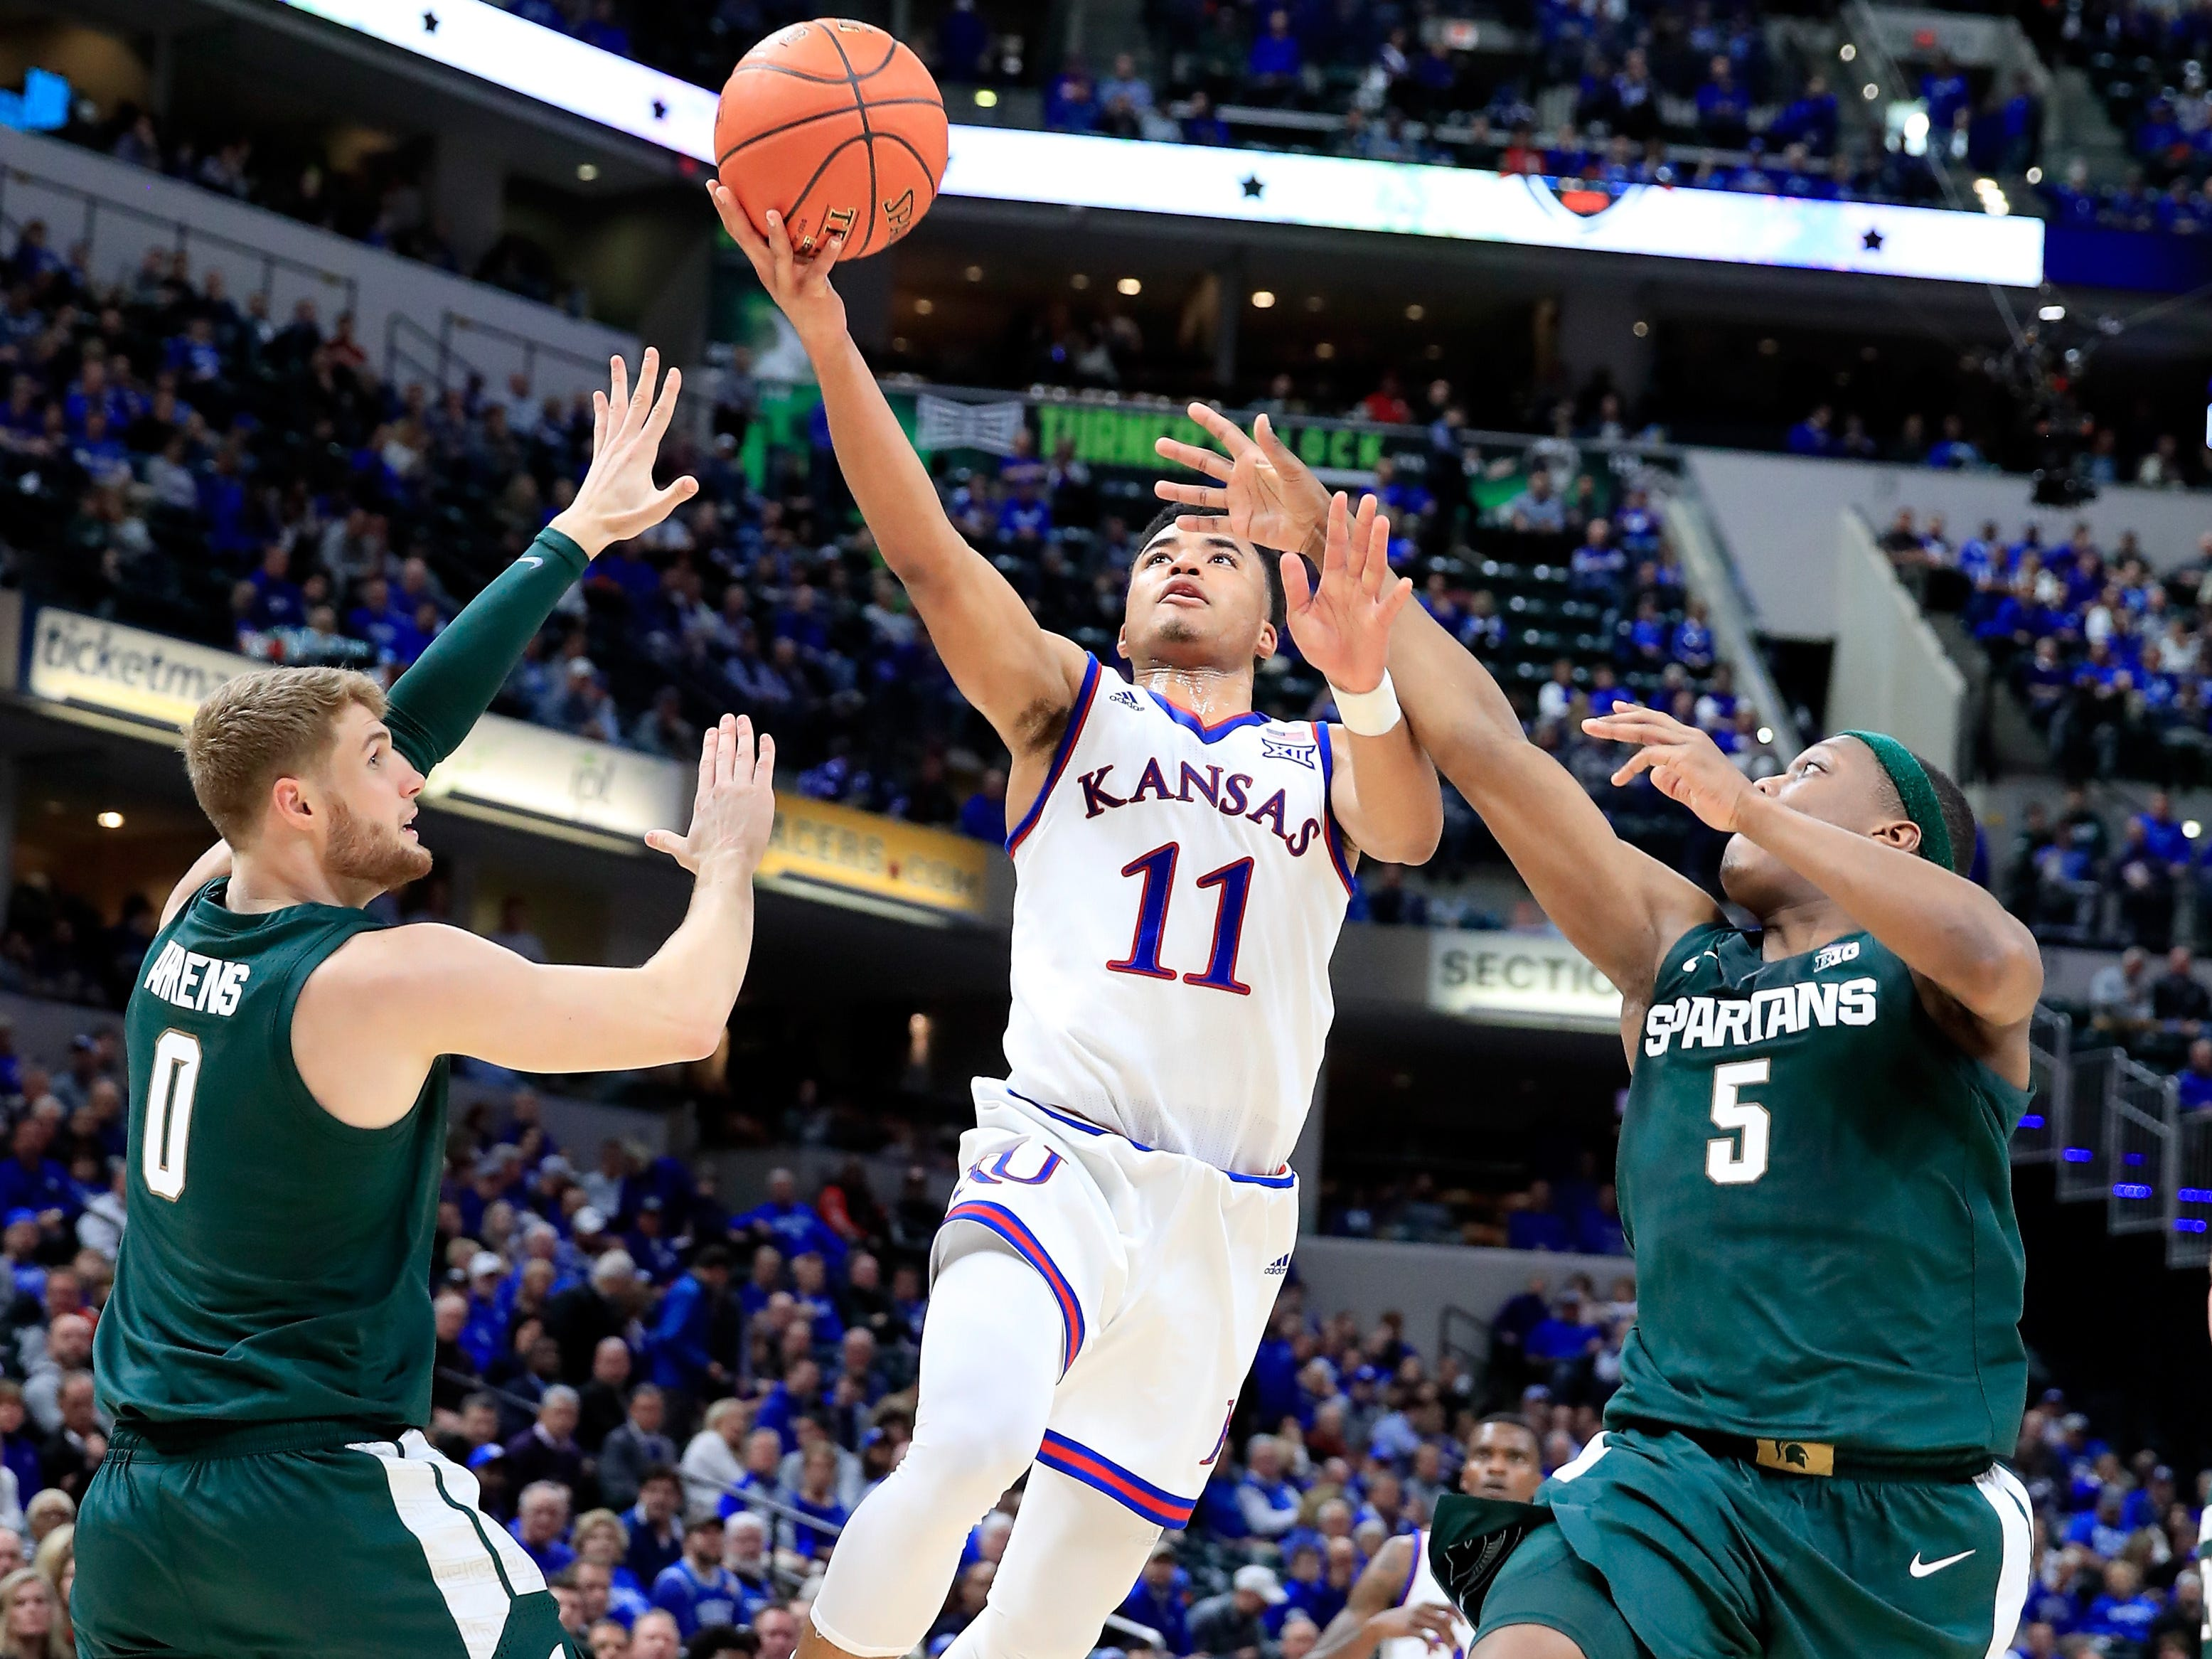 Devon Dotson (11) of the Kansas Jayhawks shoots the ball against the Michigan State Spartans during the State Farm Champions Classic at Bankers Life Fieldhouse on November 6, 2018 in Indianapolis, Indiana.